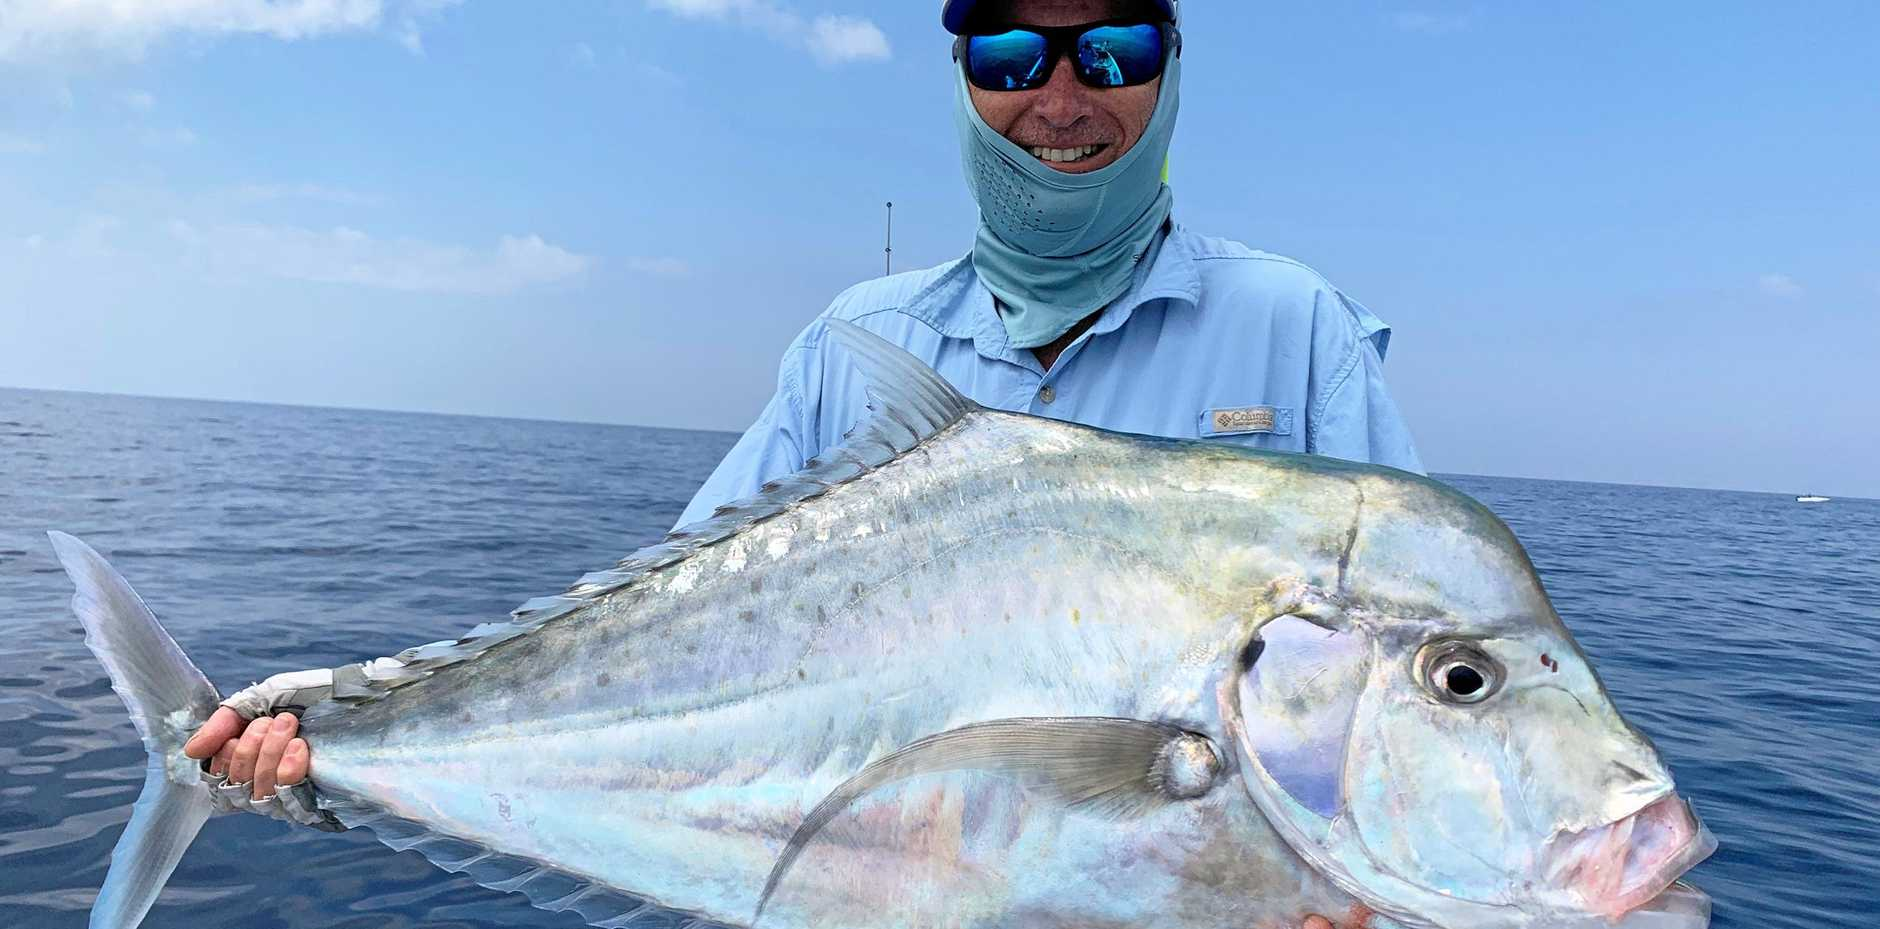 WHAT A WHOPPER! This big diamond trevally was the catch of the day for Paul Cornwell, caught off Arch Cliffs.